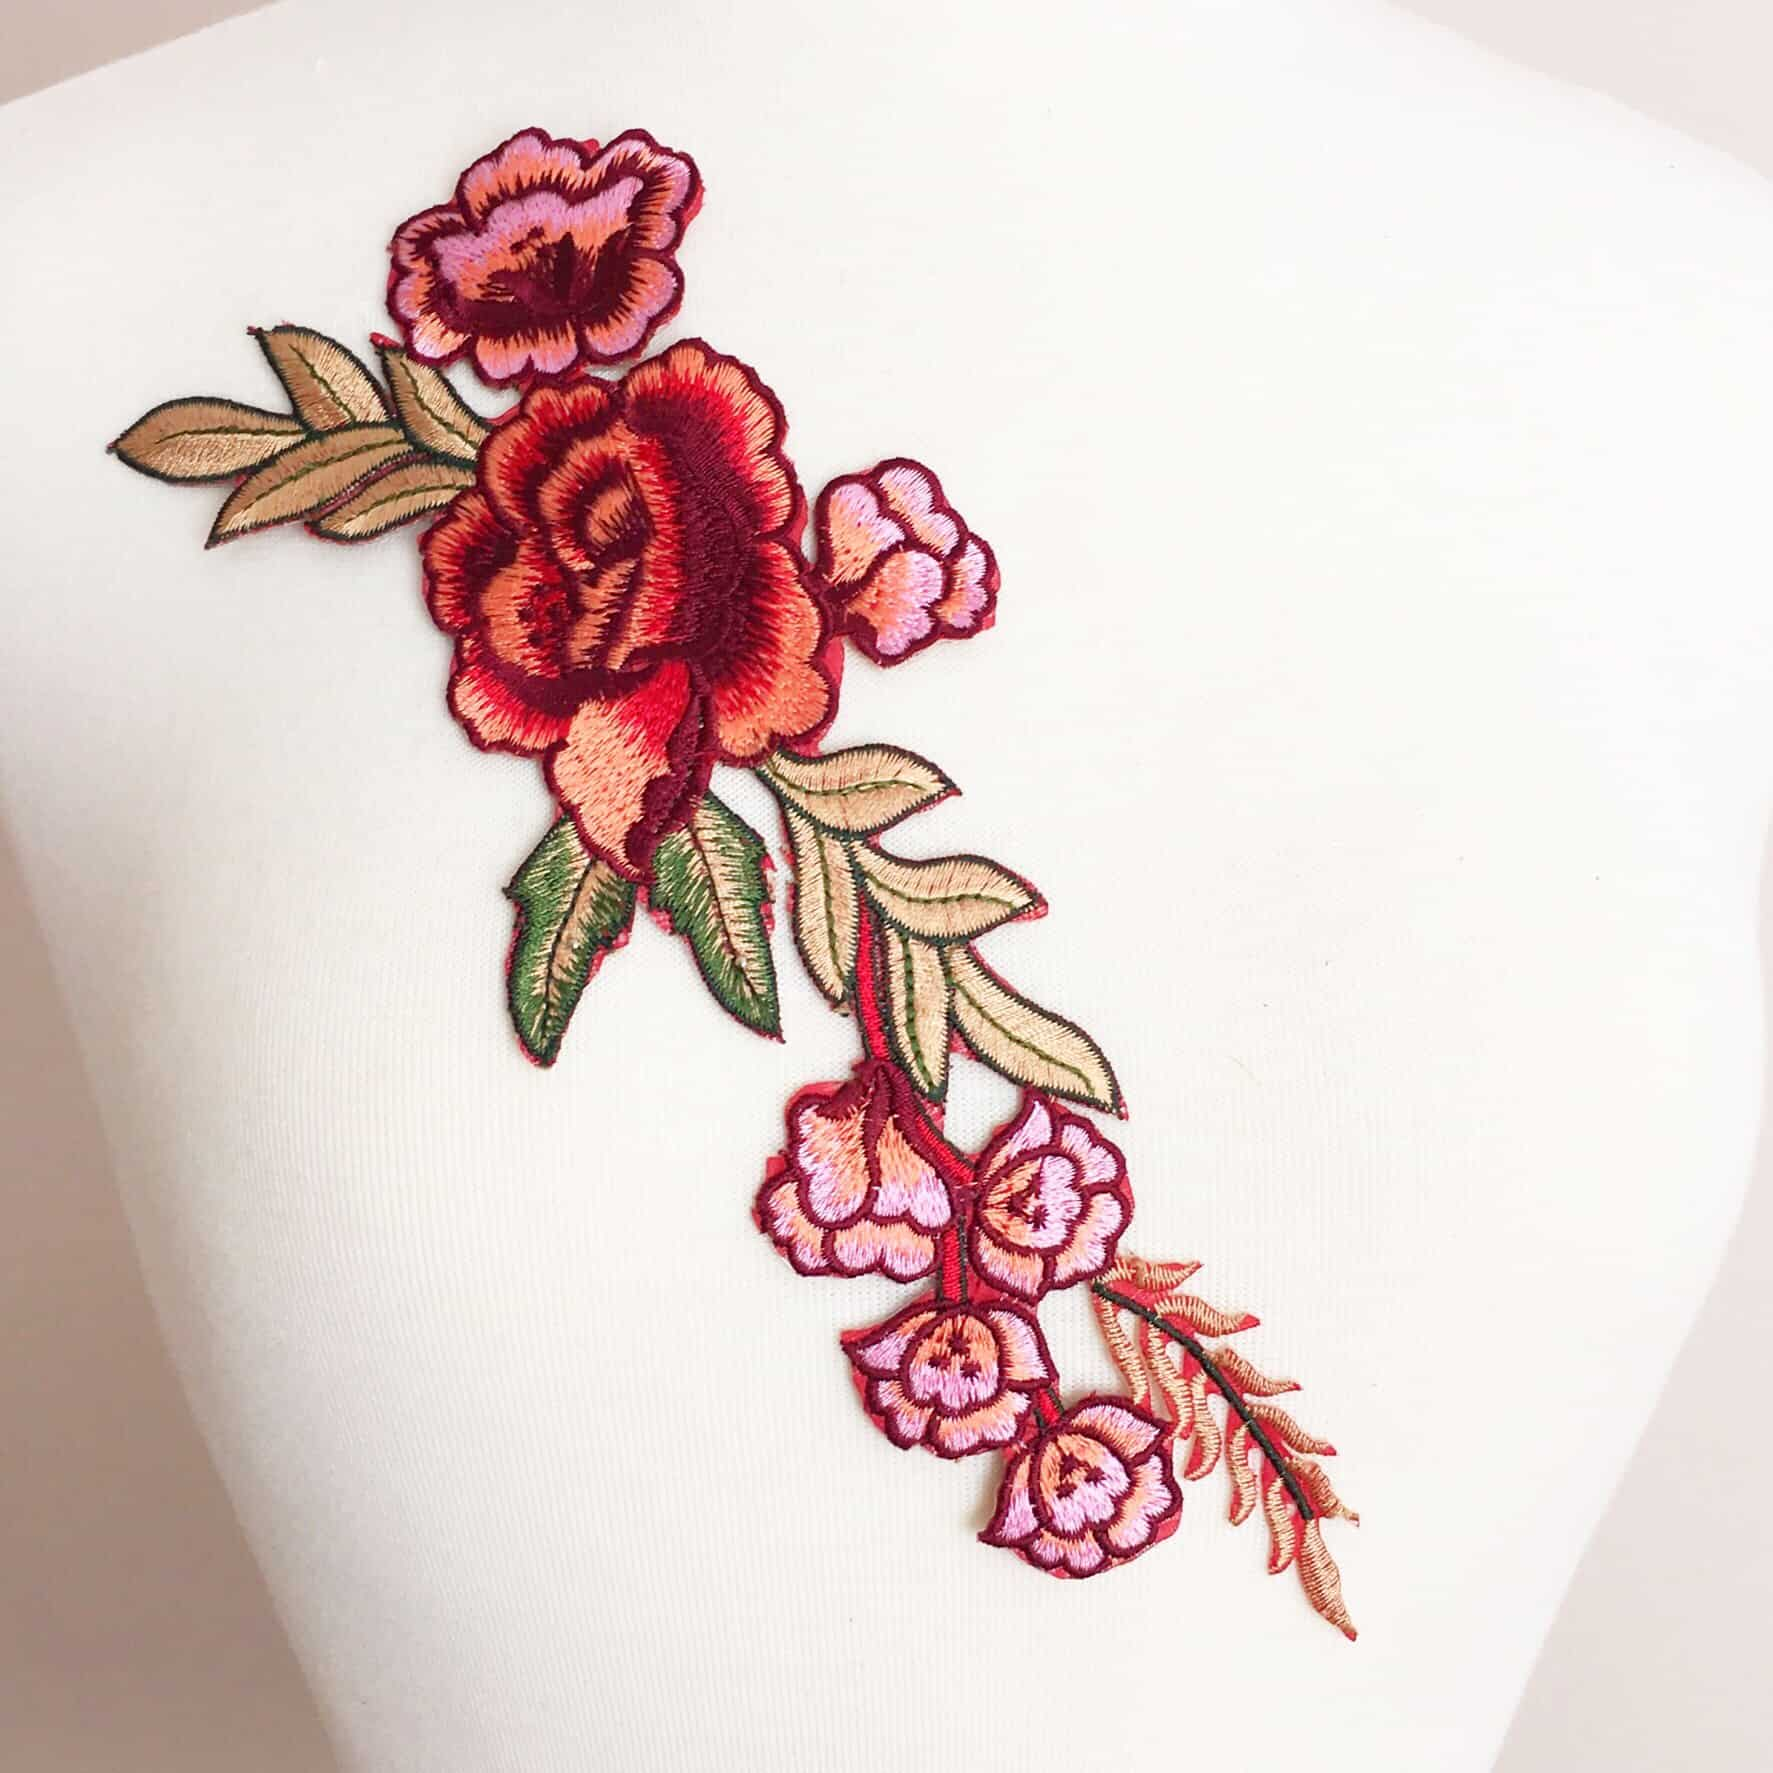 Embroidered Floral Motif (Iron-On)